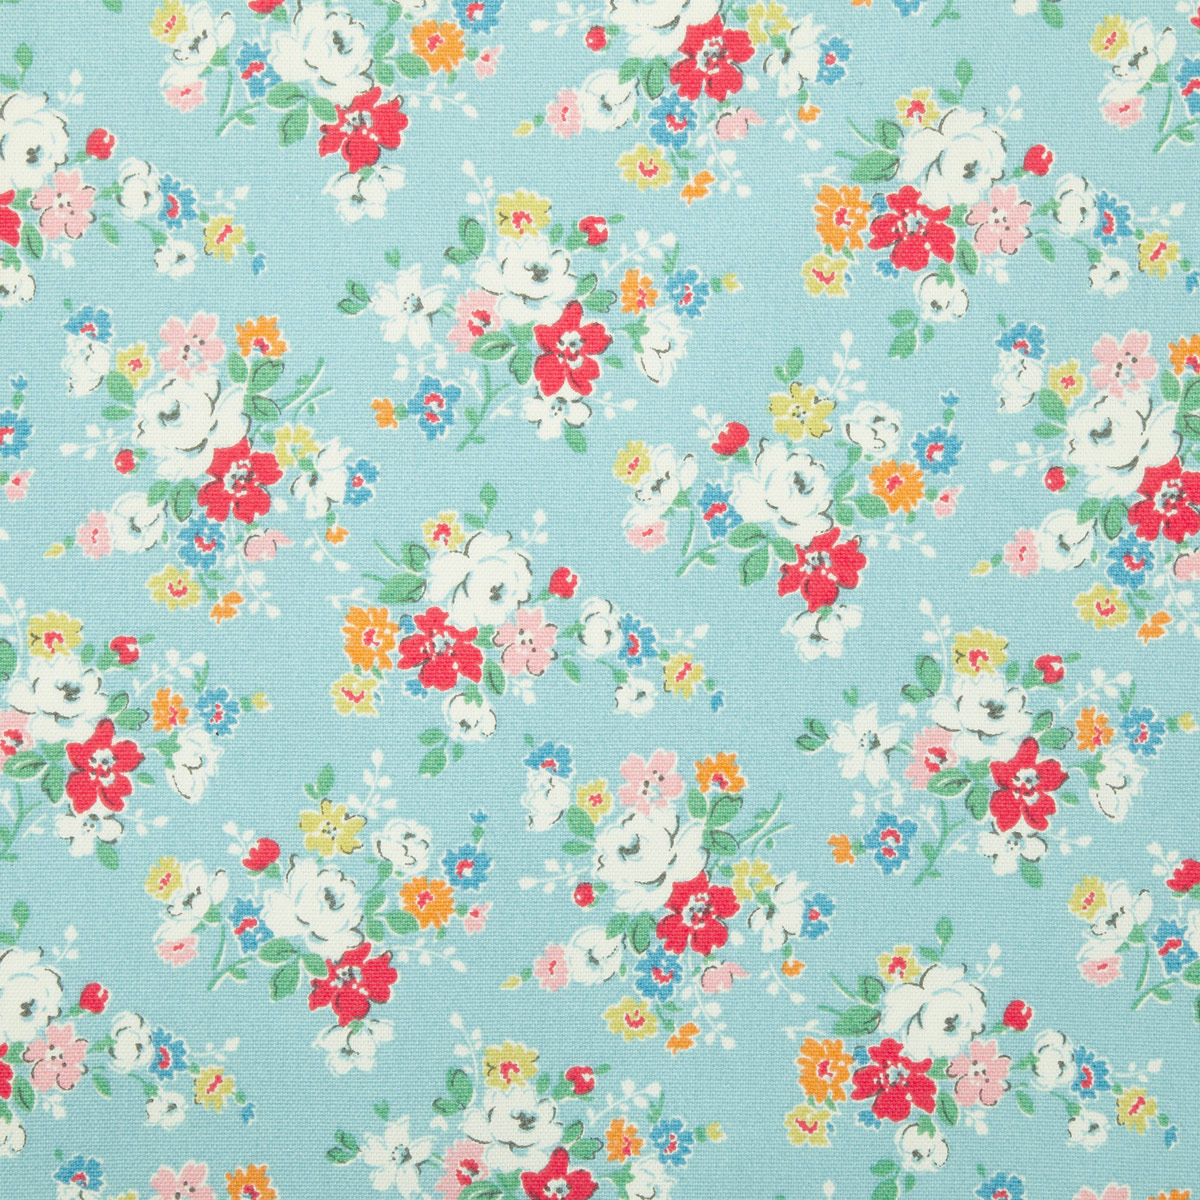 Cath Kidston Desktop Wallpaper Wallpapersafari